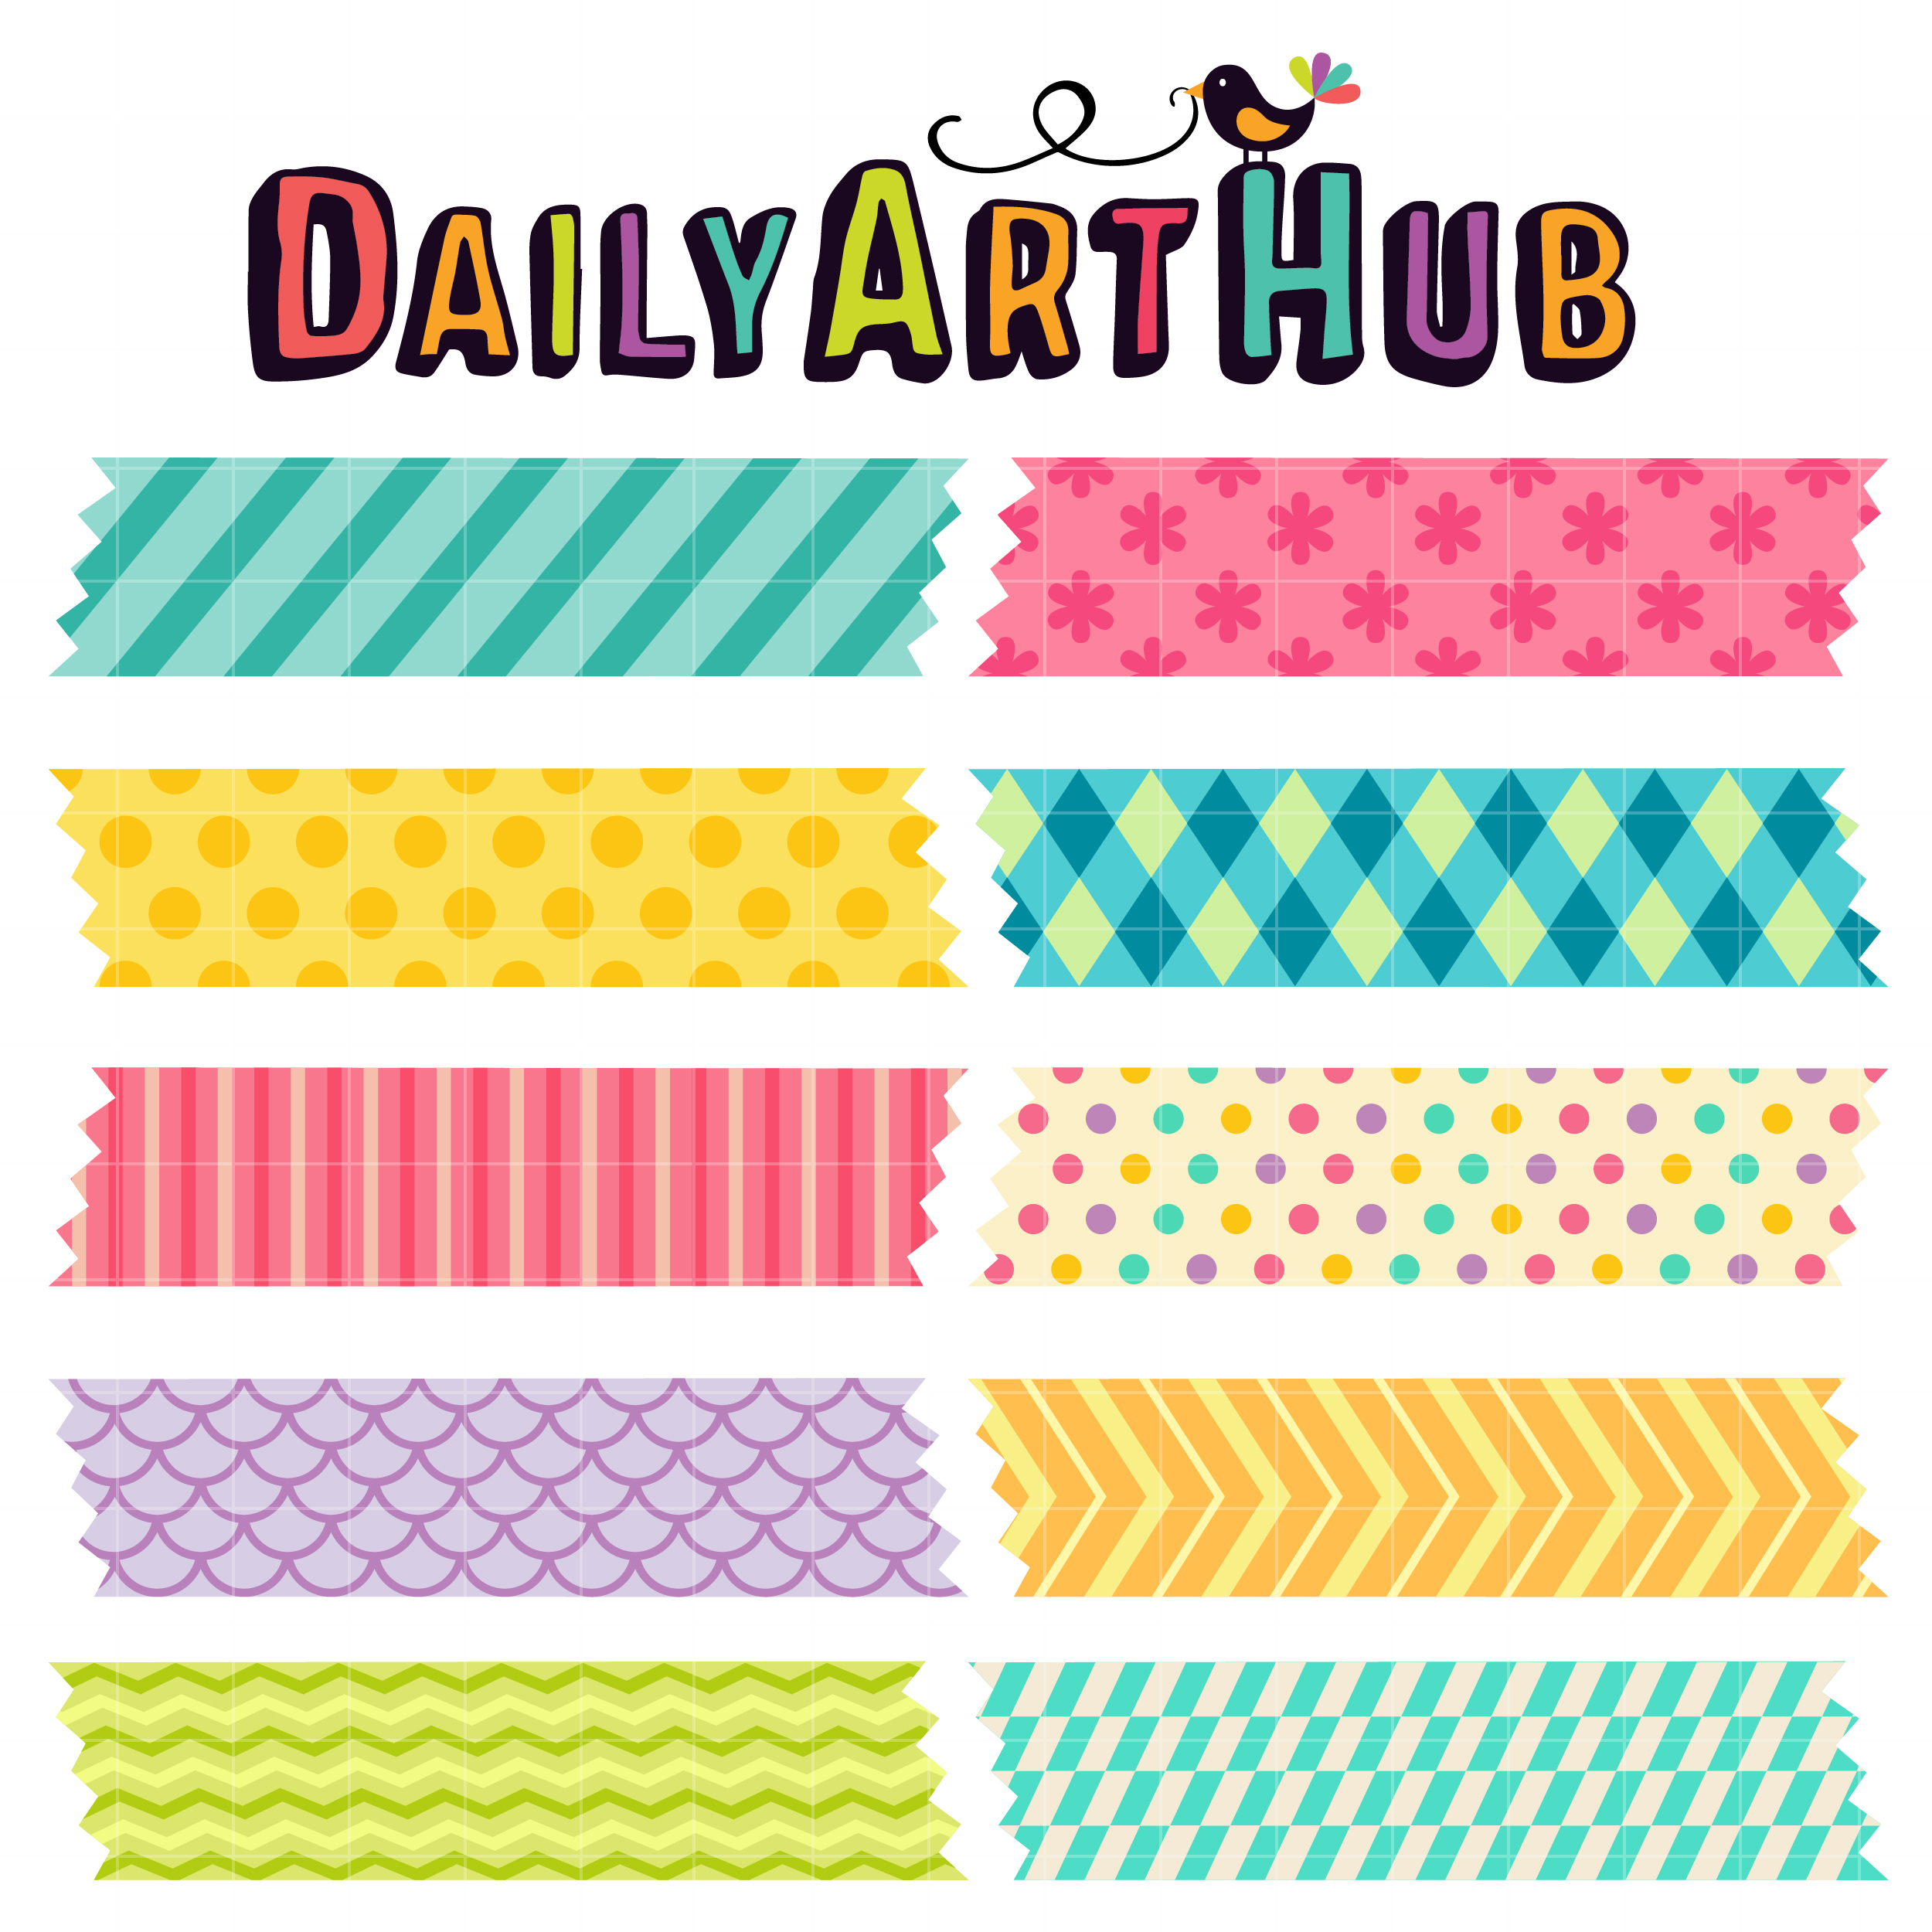 Washi Tapes Clip Art Set.